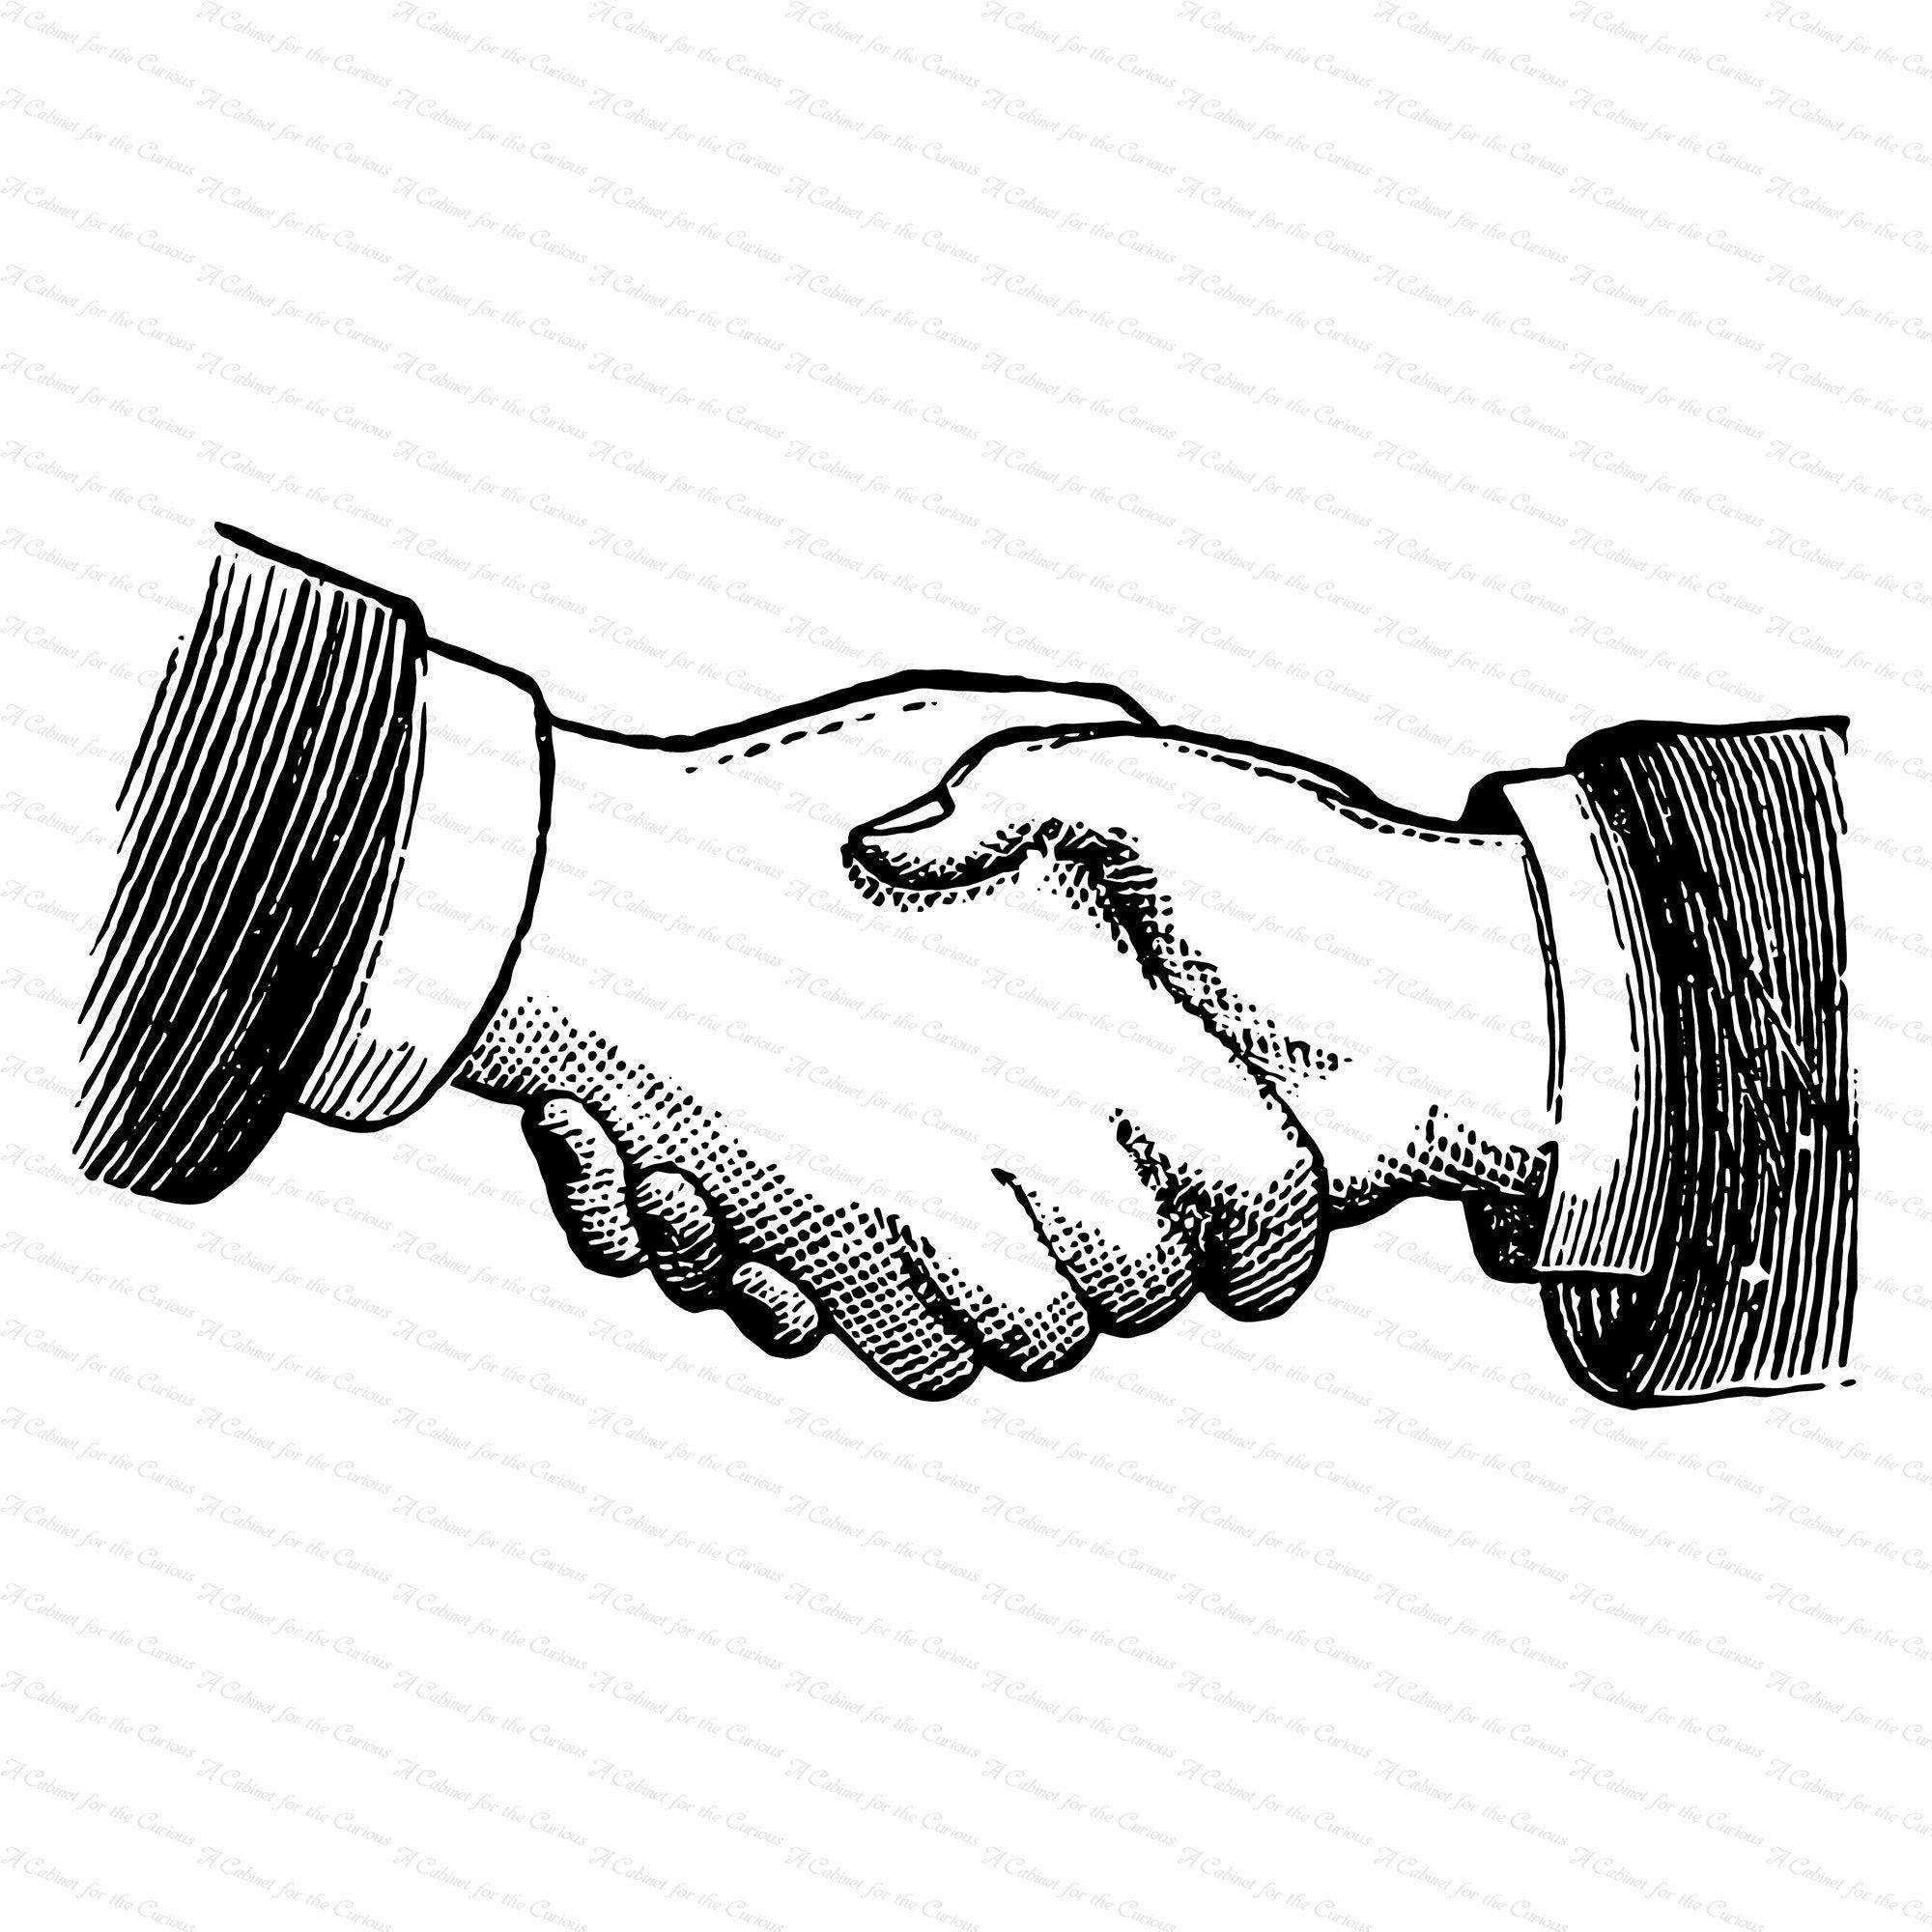 Vintage Victorian Hand Shake 1880s Antique Shaking Hands Etsy In 2021 Shaking Hands Tattoo Clip Art Hand Clipart